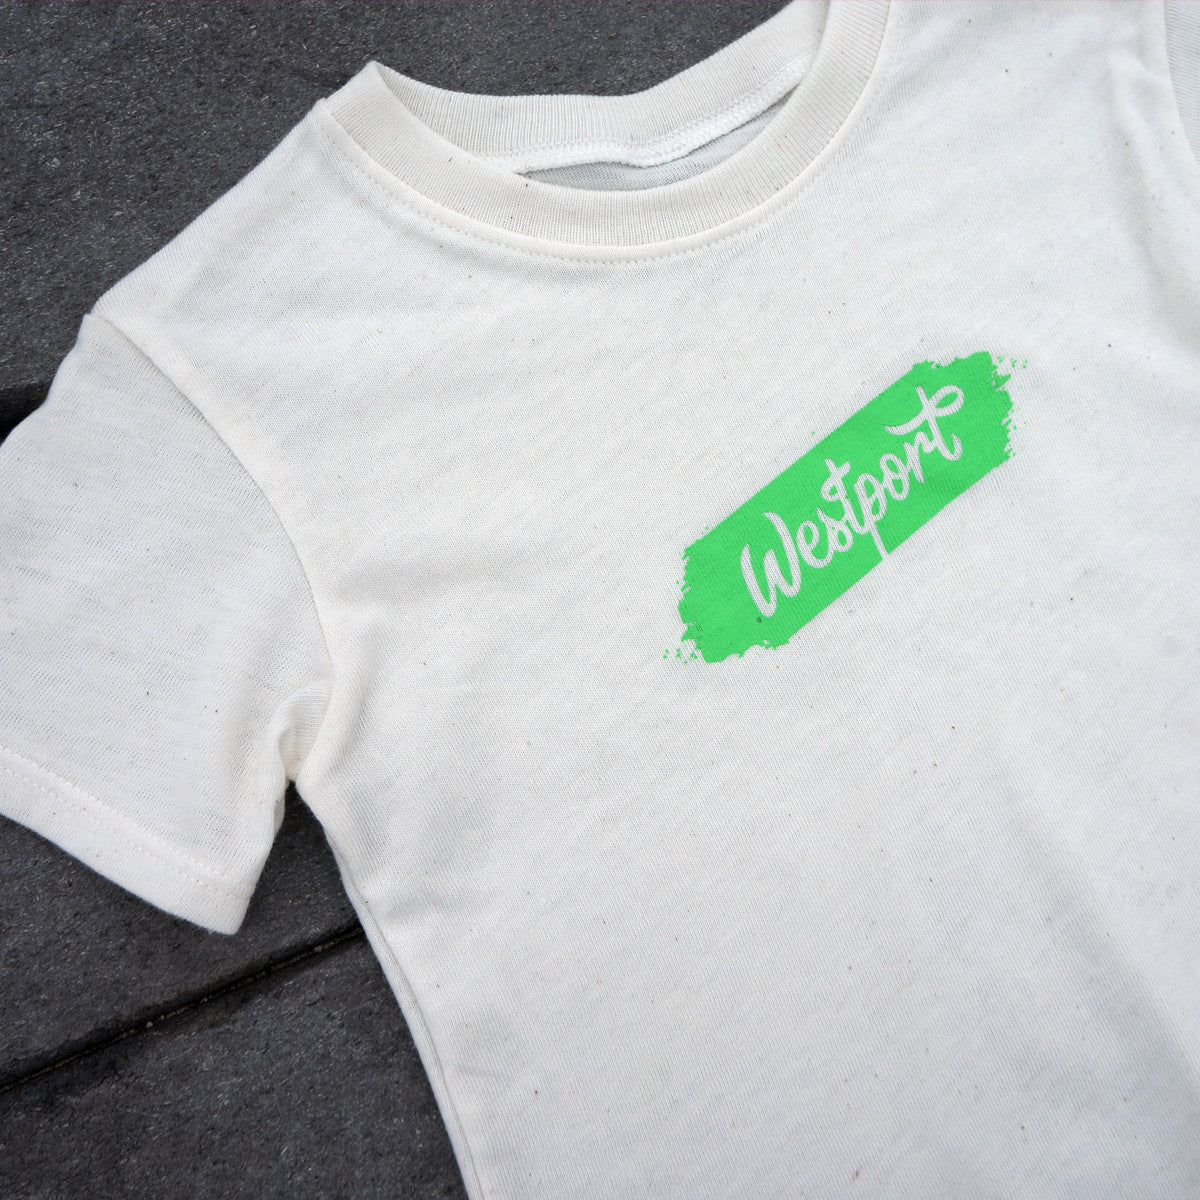 Westport T-Shirt by Townee - Toddler Playground Tee (front)